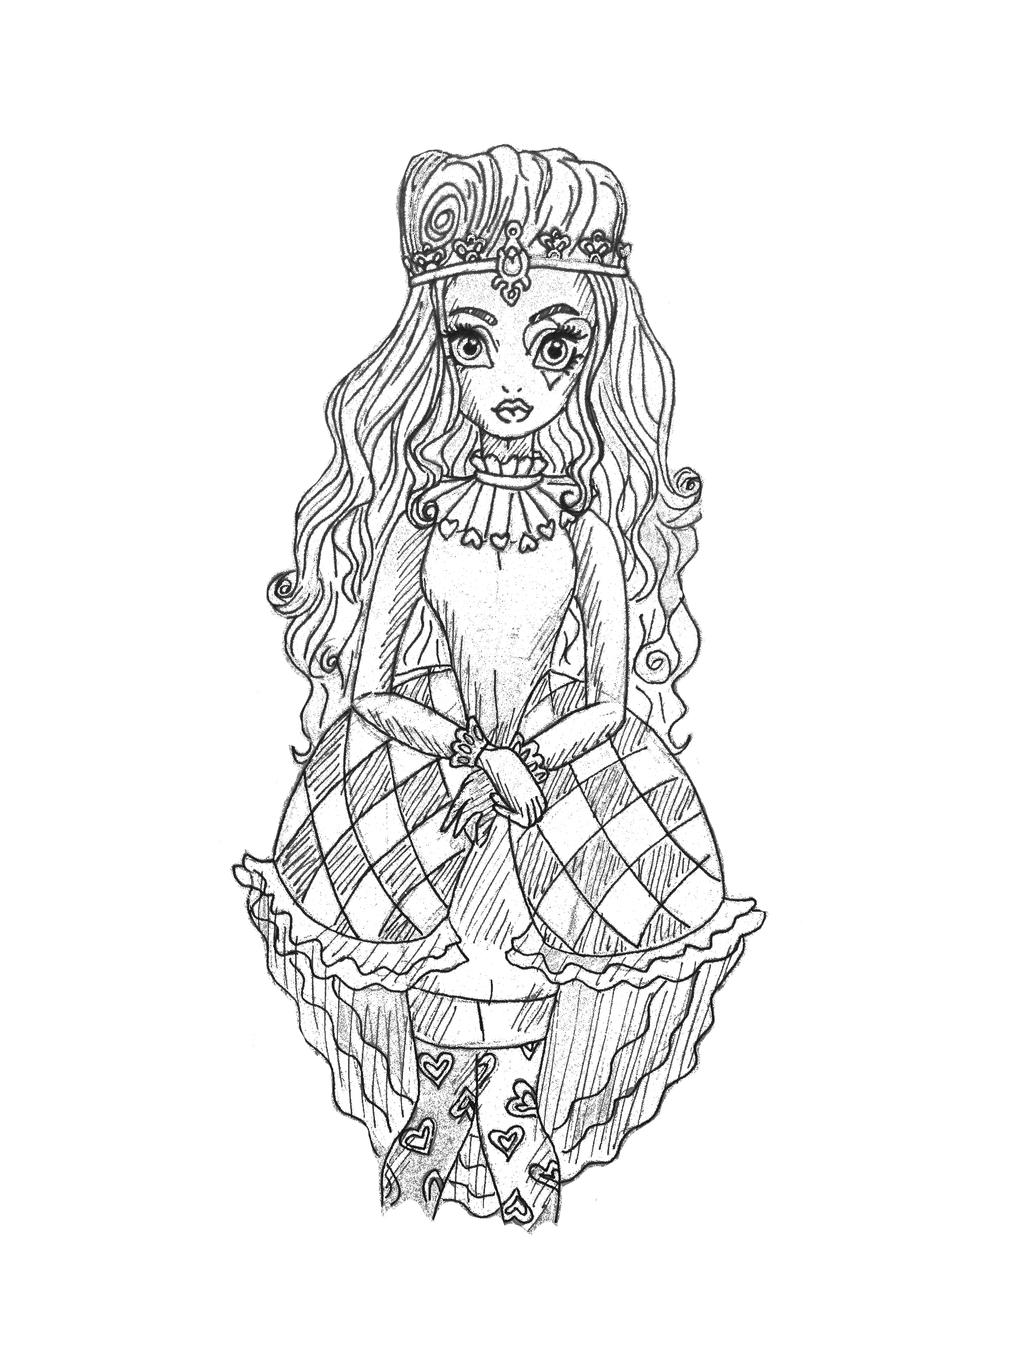 Lizzie hearts coloring page -  Young Lizzie Hearts Sketch By Petitrevanche